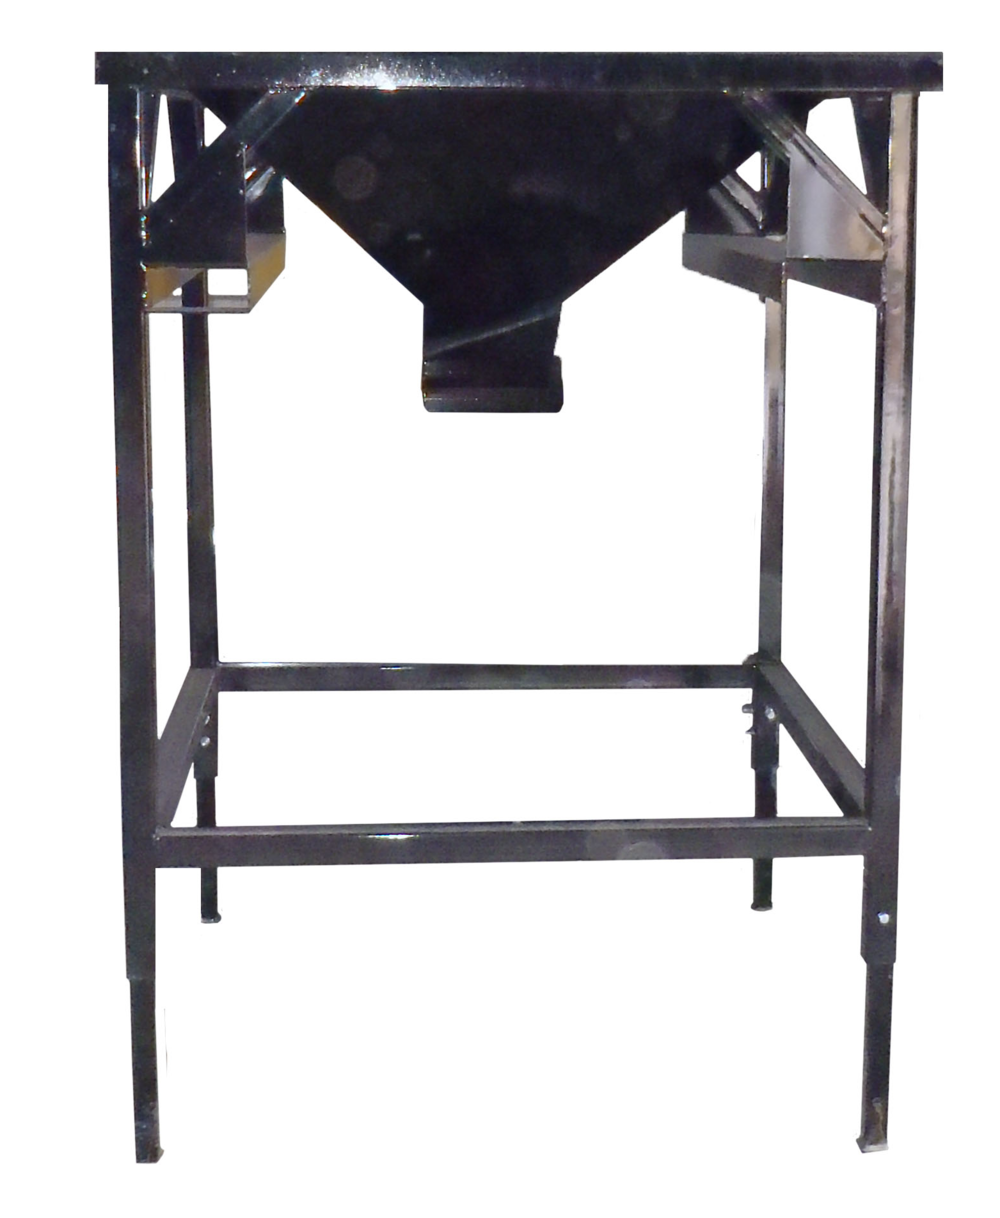 Probox Stand Cutout copy.jpg